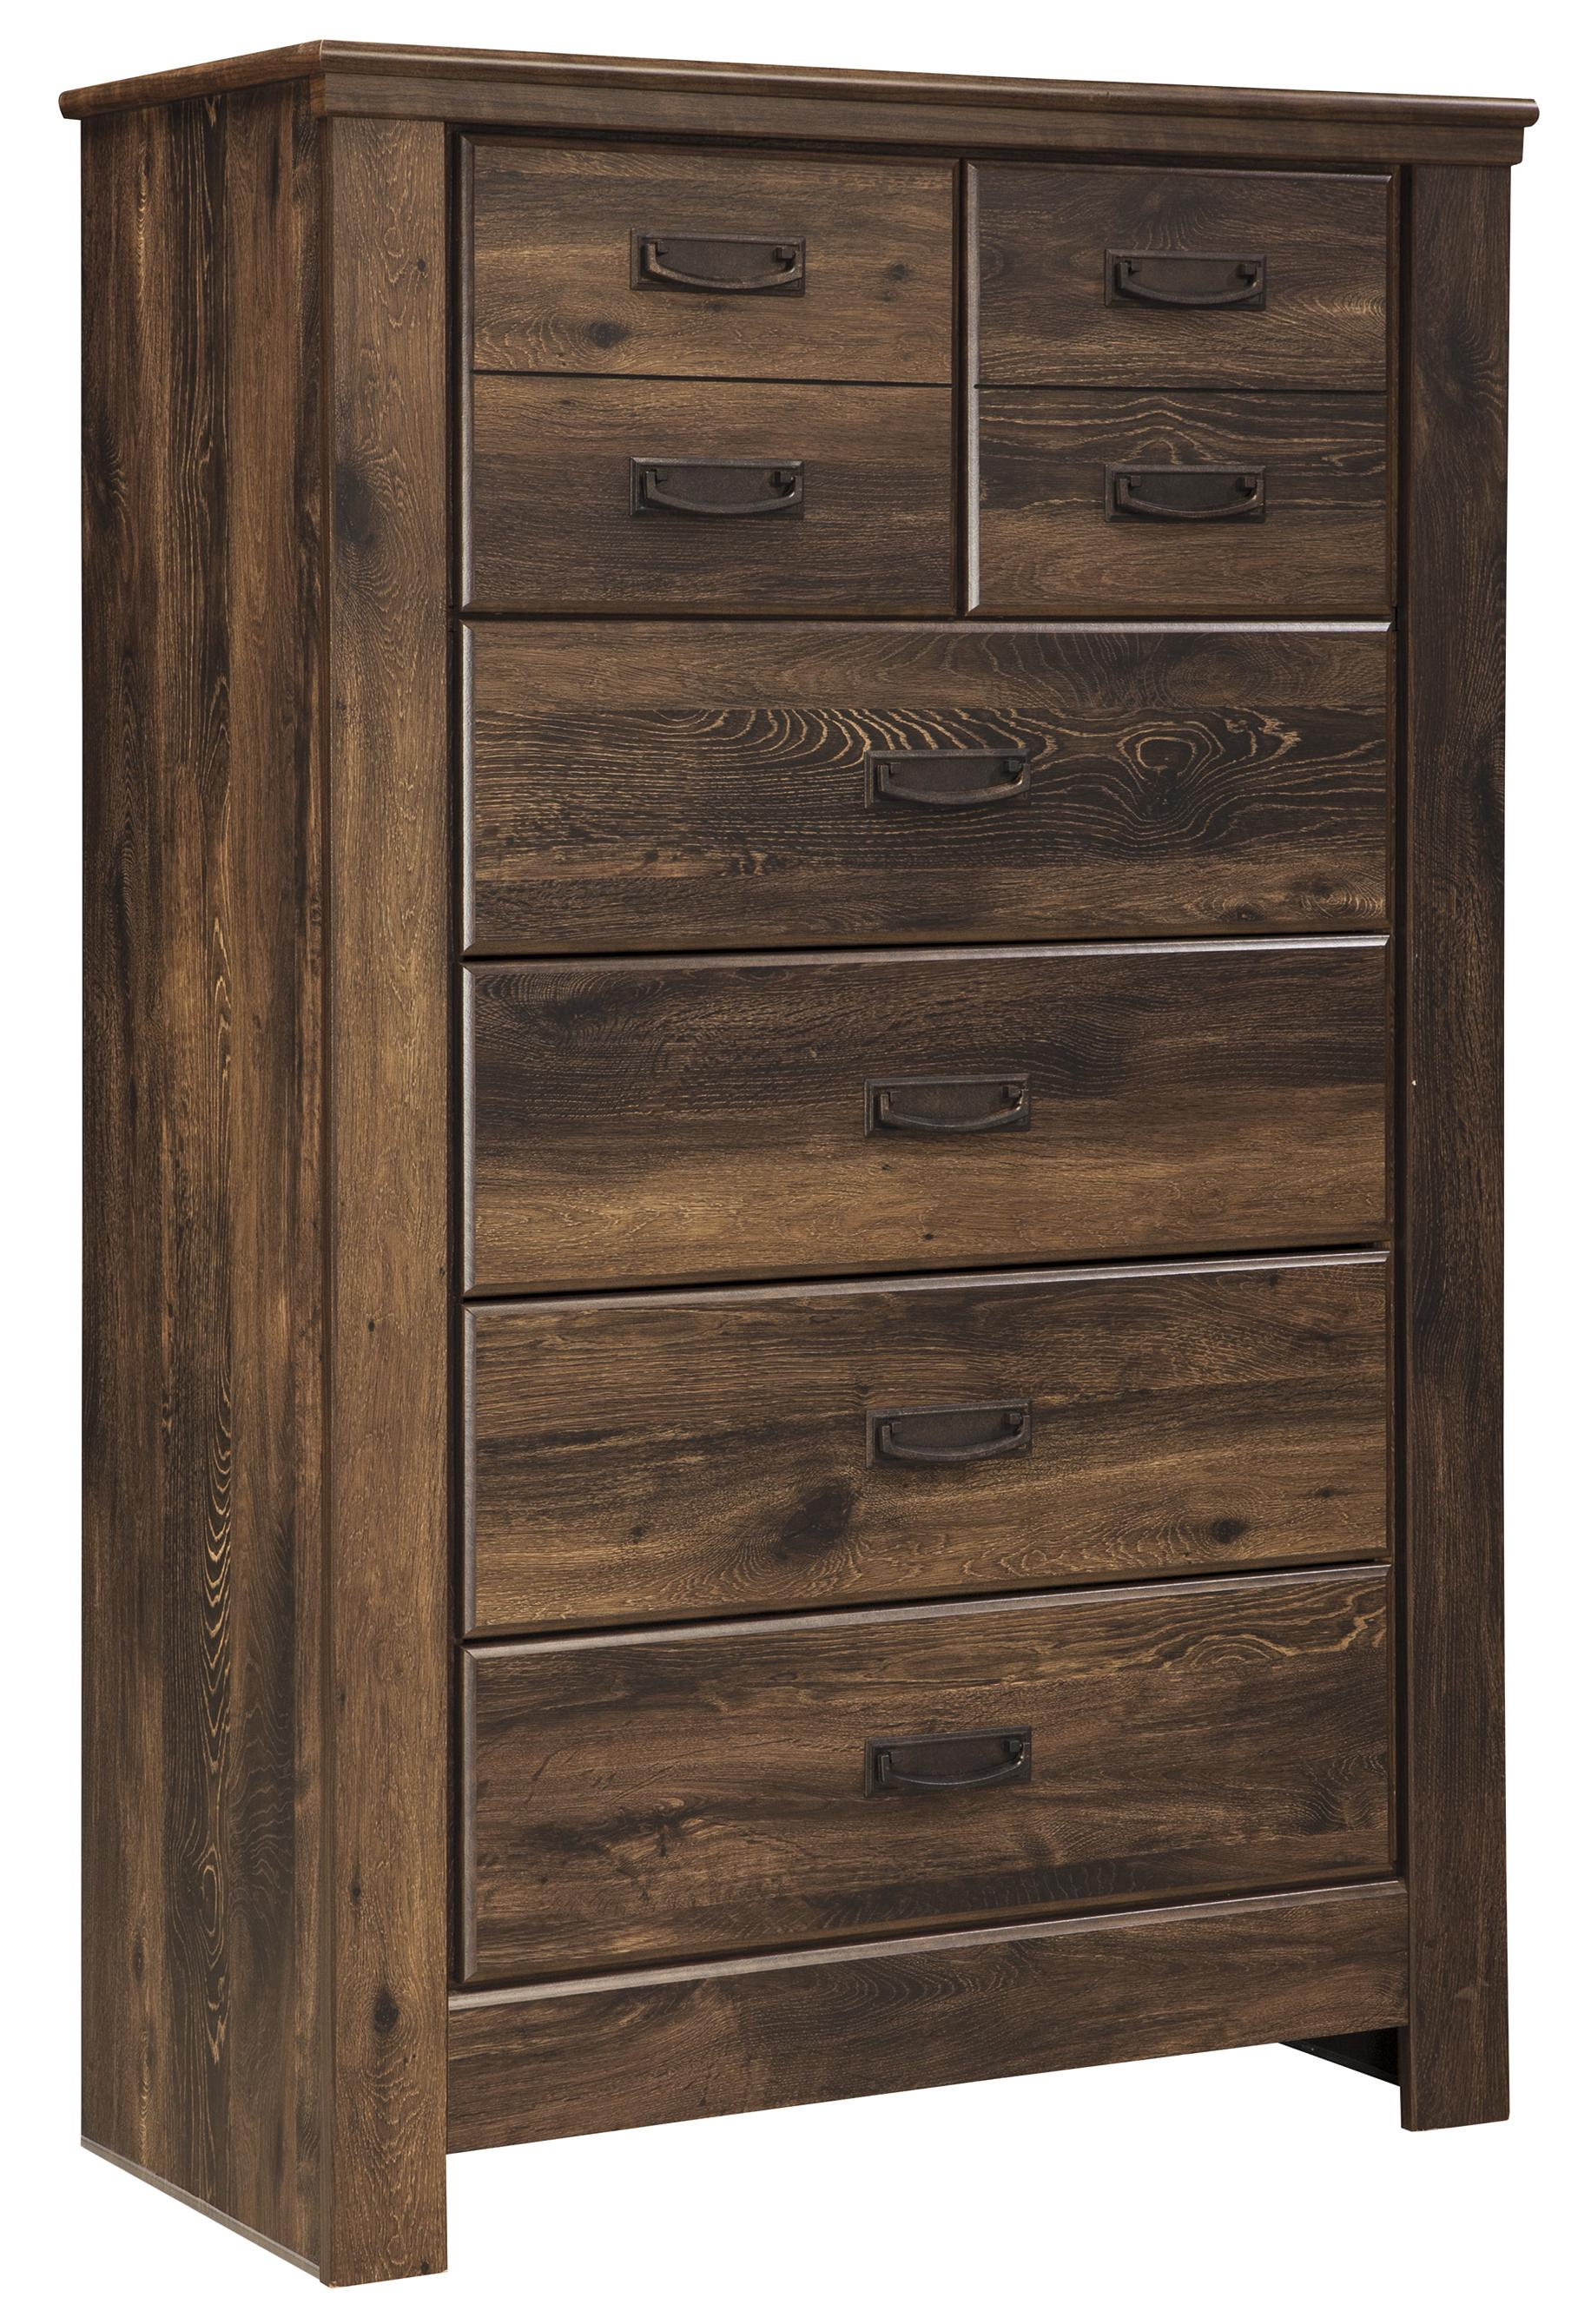 Signature Design by Ashley Quinden Five Drawer Chest - Item Number: B246-46